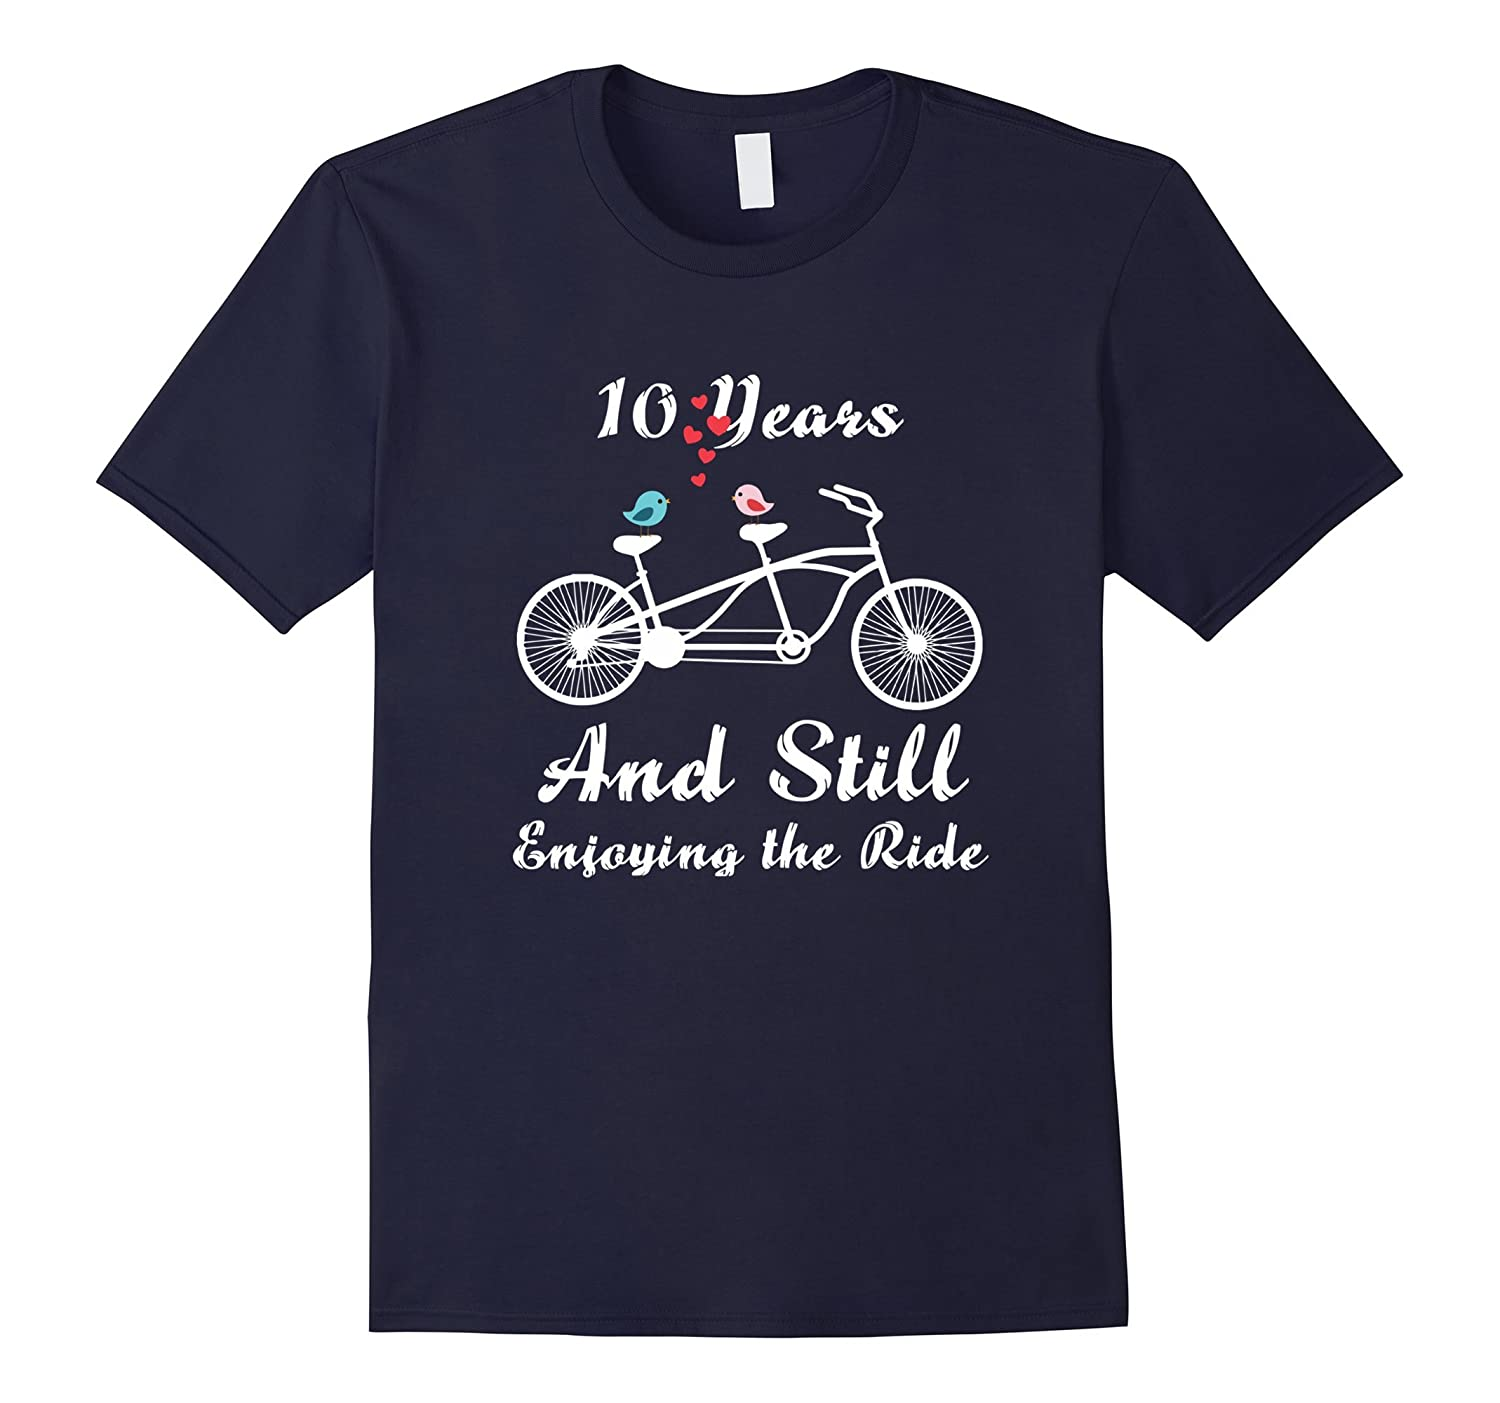 10th Wedding Anniversary T-Shirt - 10 Years Marriage Gift-TH